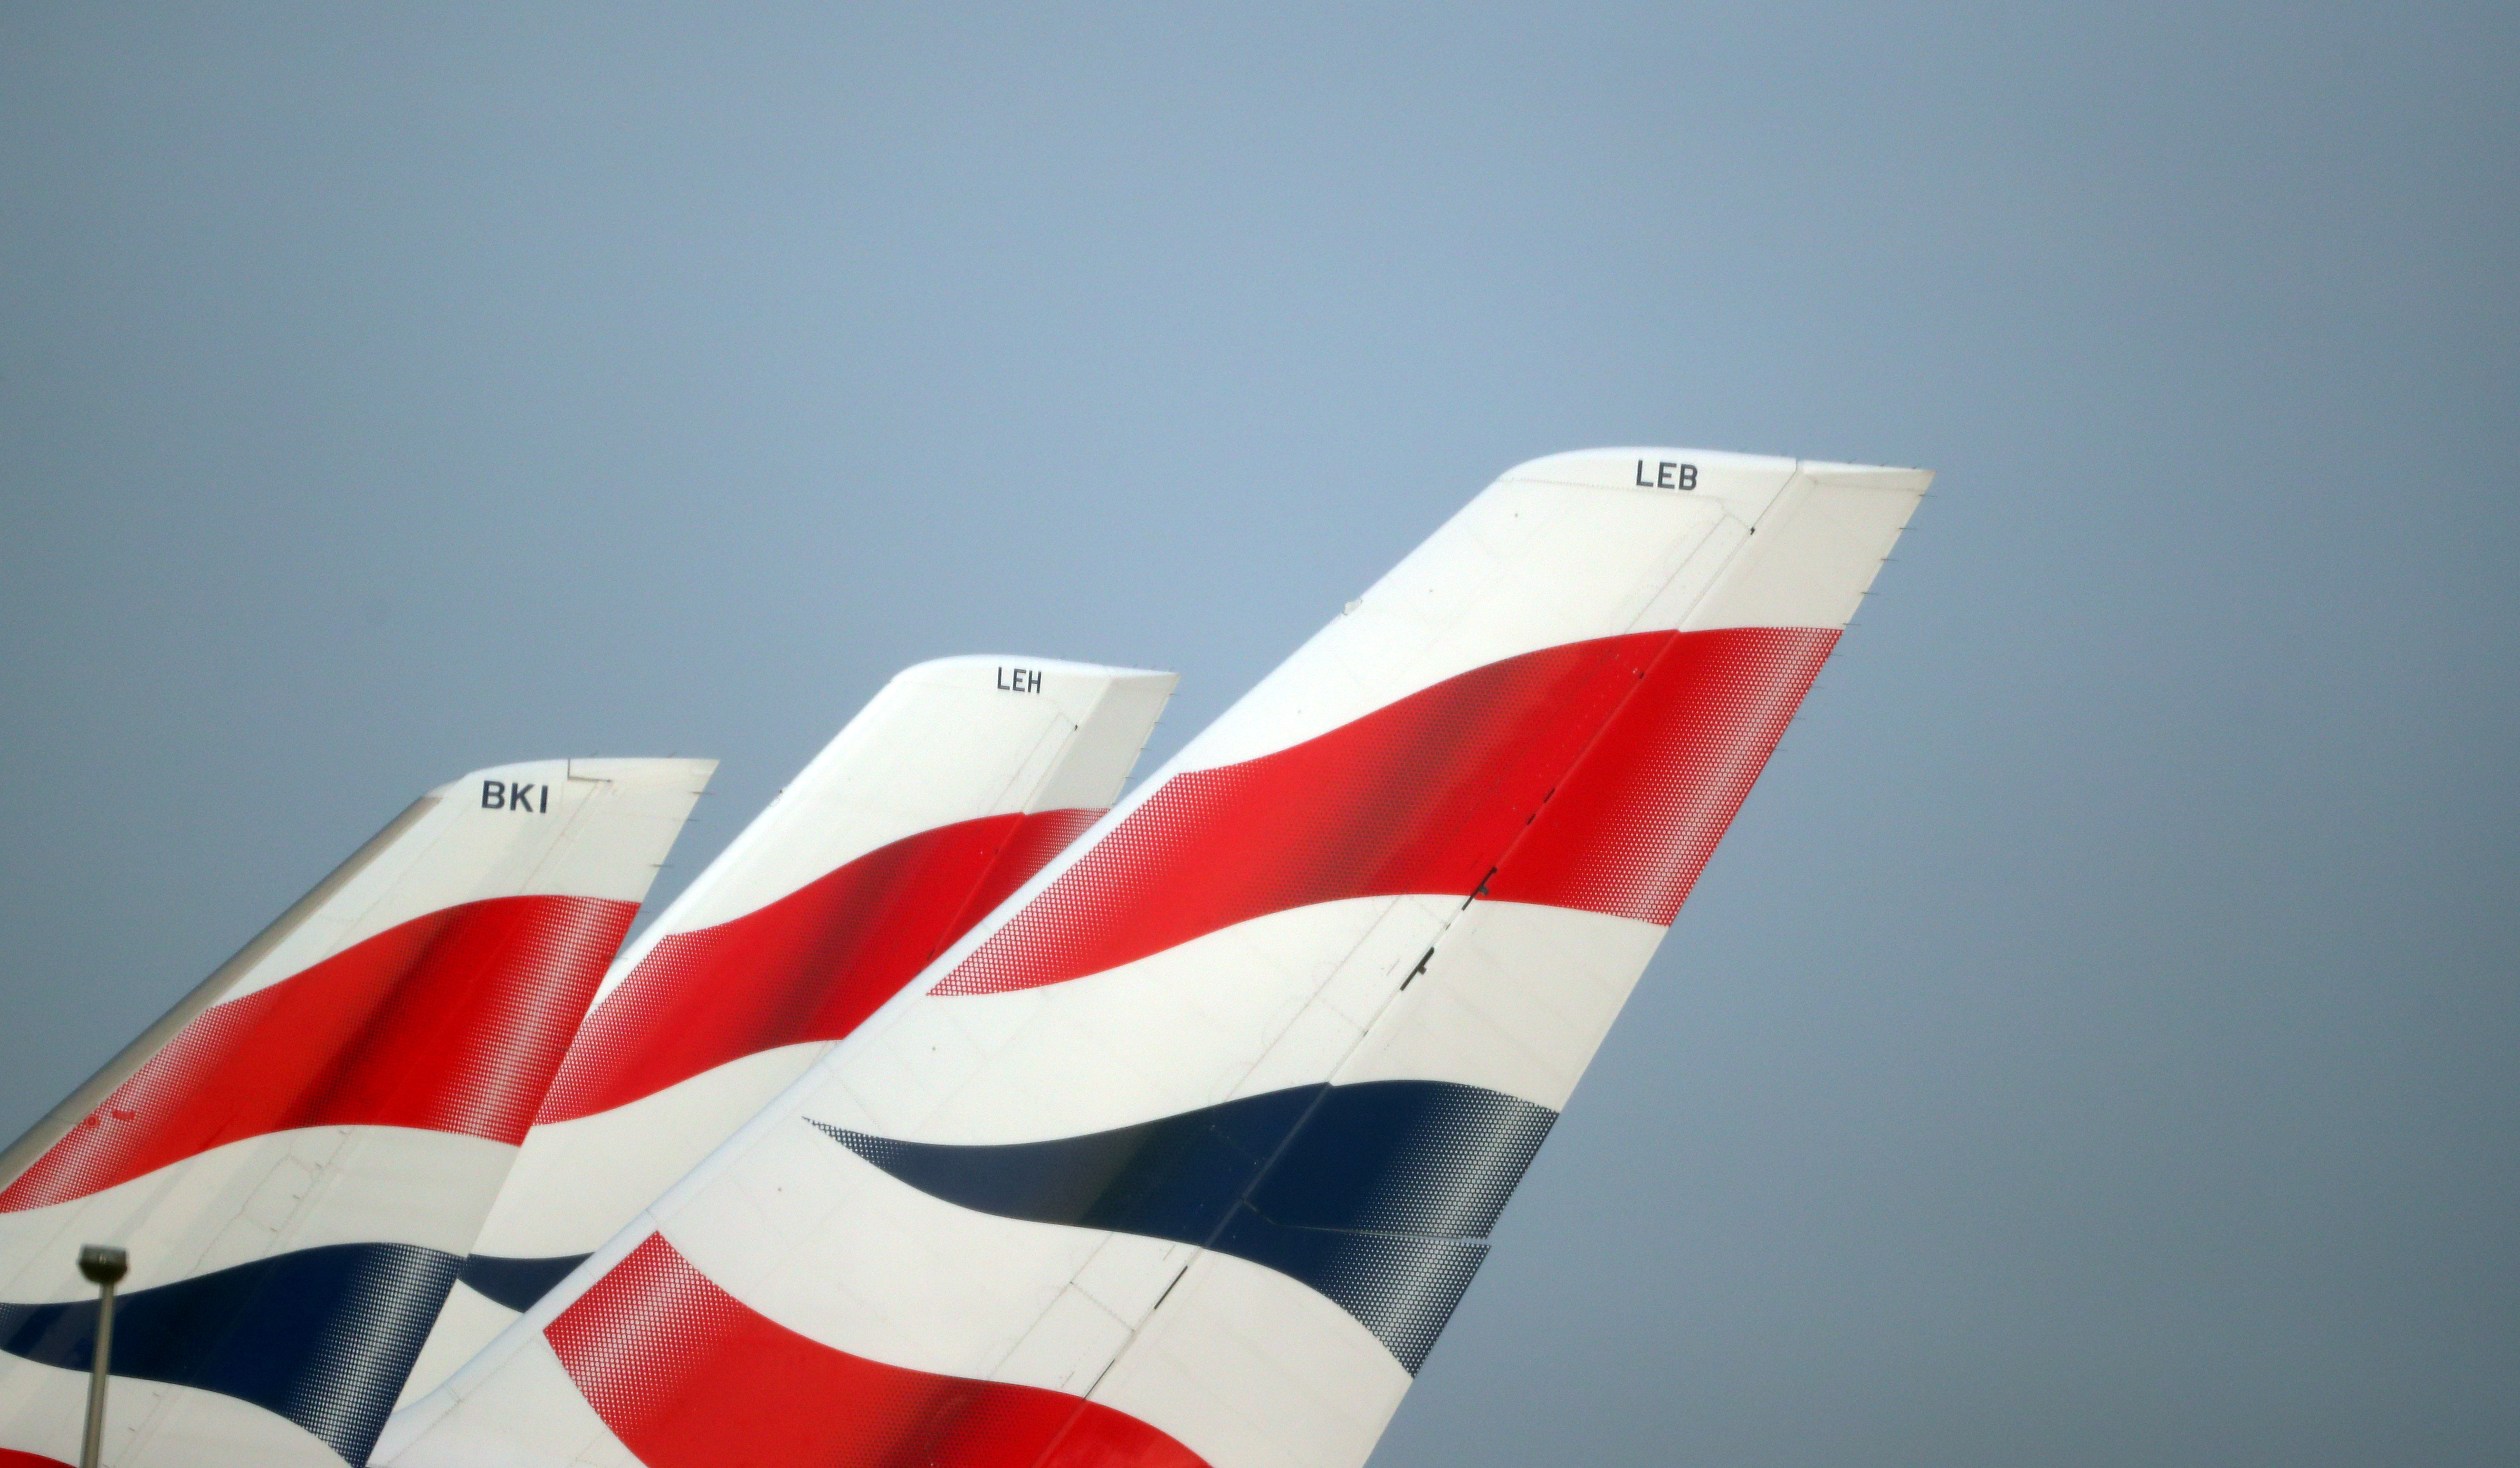 British Airways logos are seen on tail fins at Heathrow Airport in west London, Britain, February 23, 2018. REUTERS/Hannah McKay